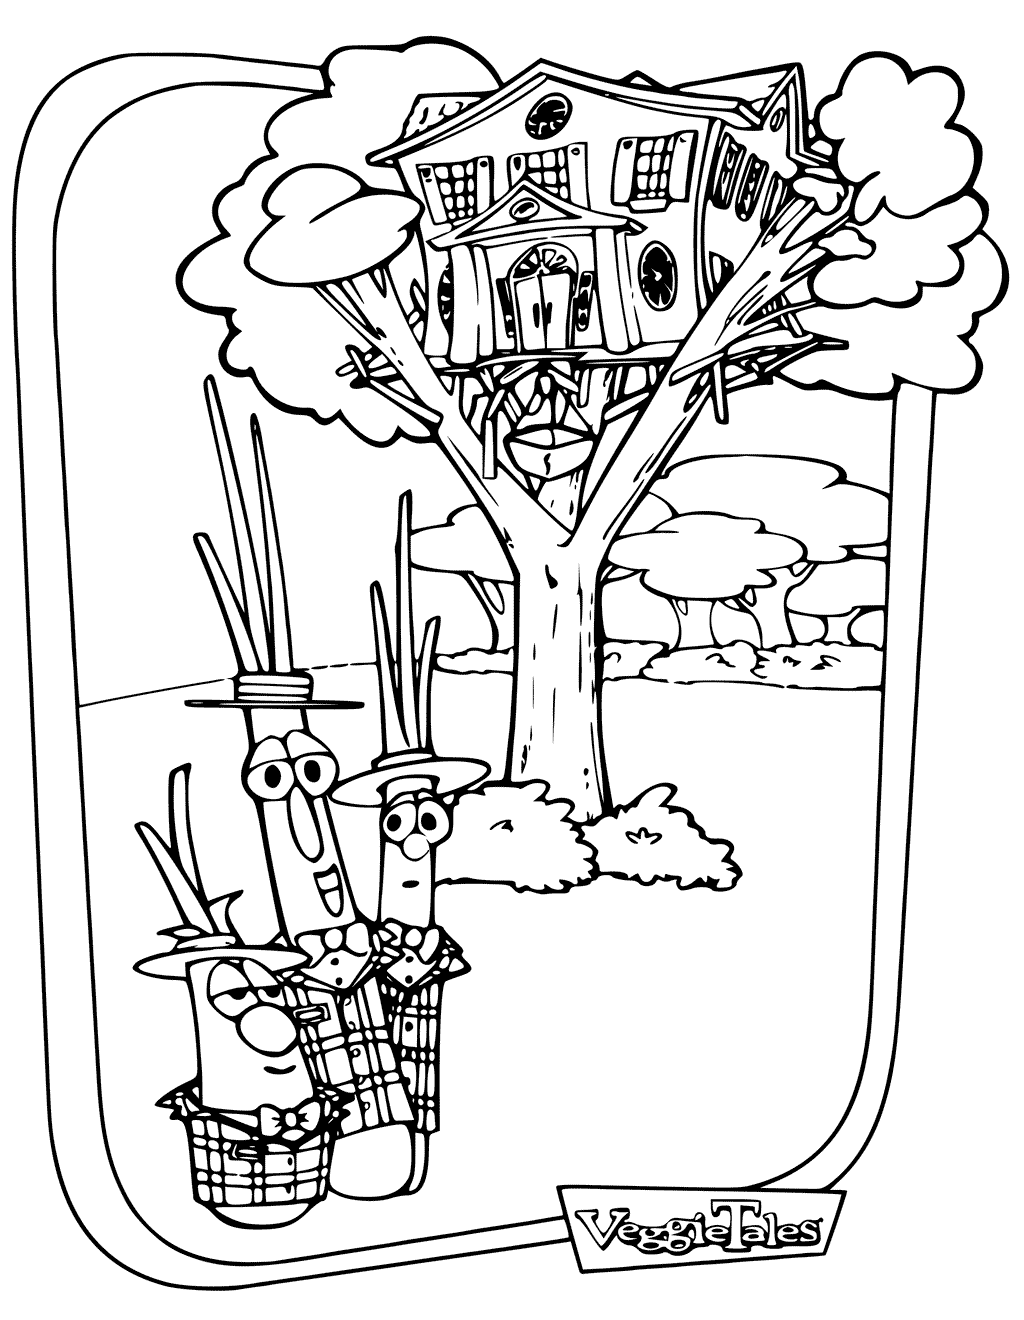 treehouse coloring pages treehouse coloring pages best coloring pages for kids pages treehouse coloring